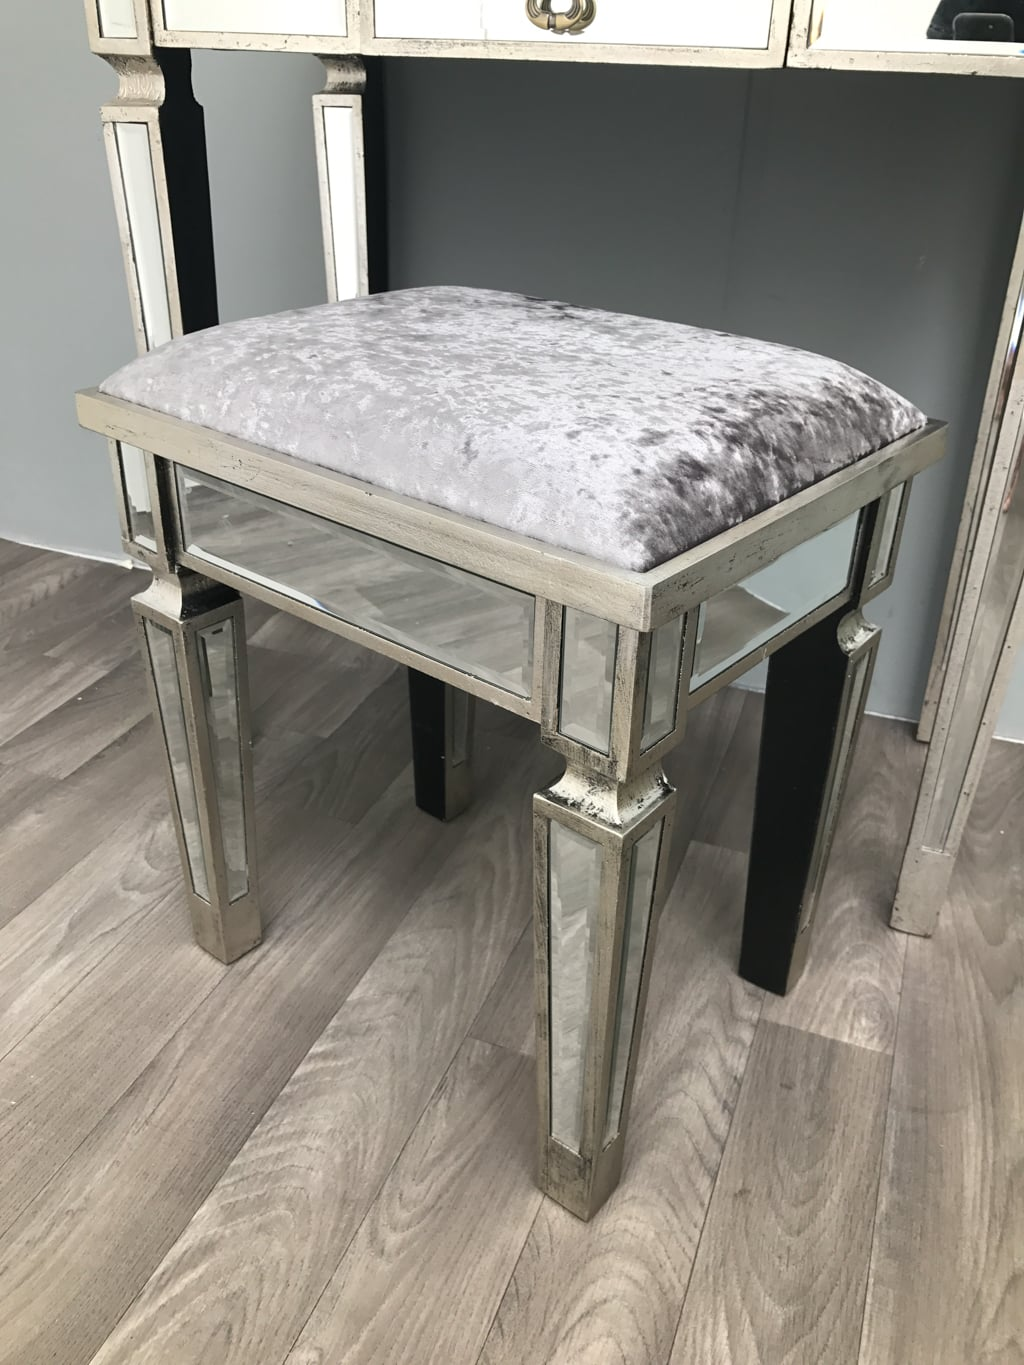 Mirrored Stool for Vanity Dressing Table